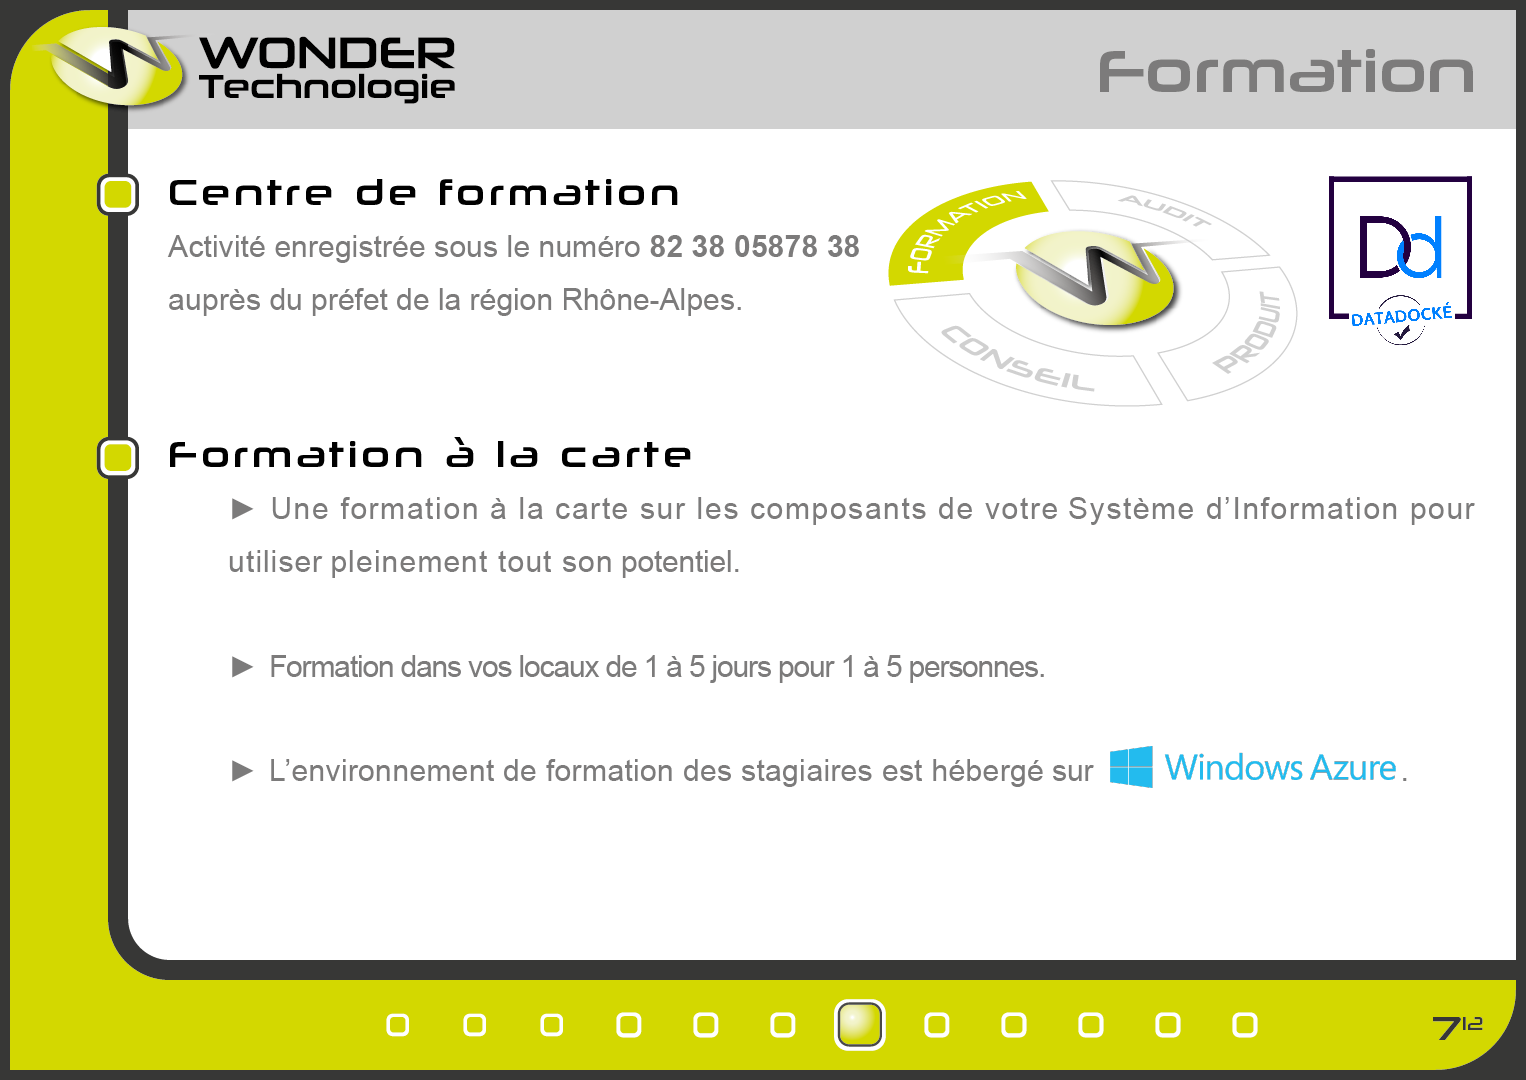 http://wonder-technologie.fr/images/7-formation.png